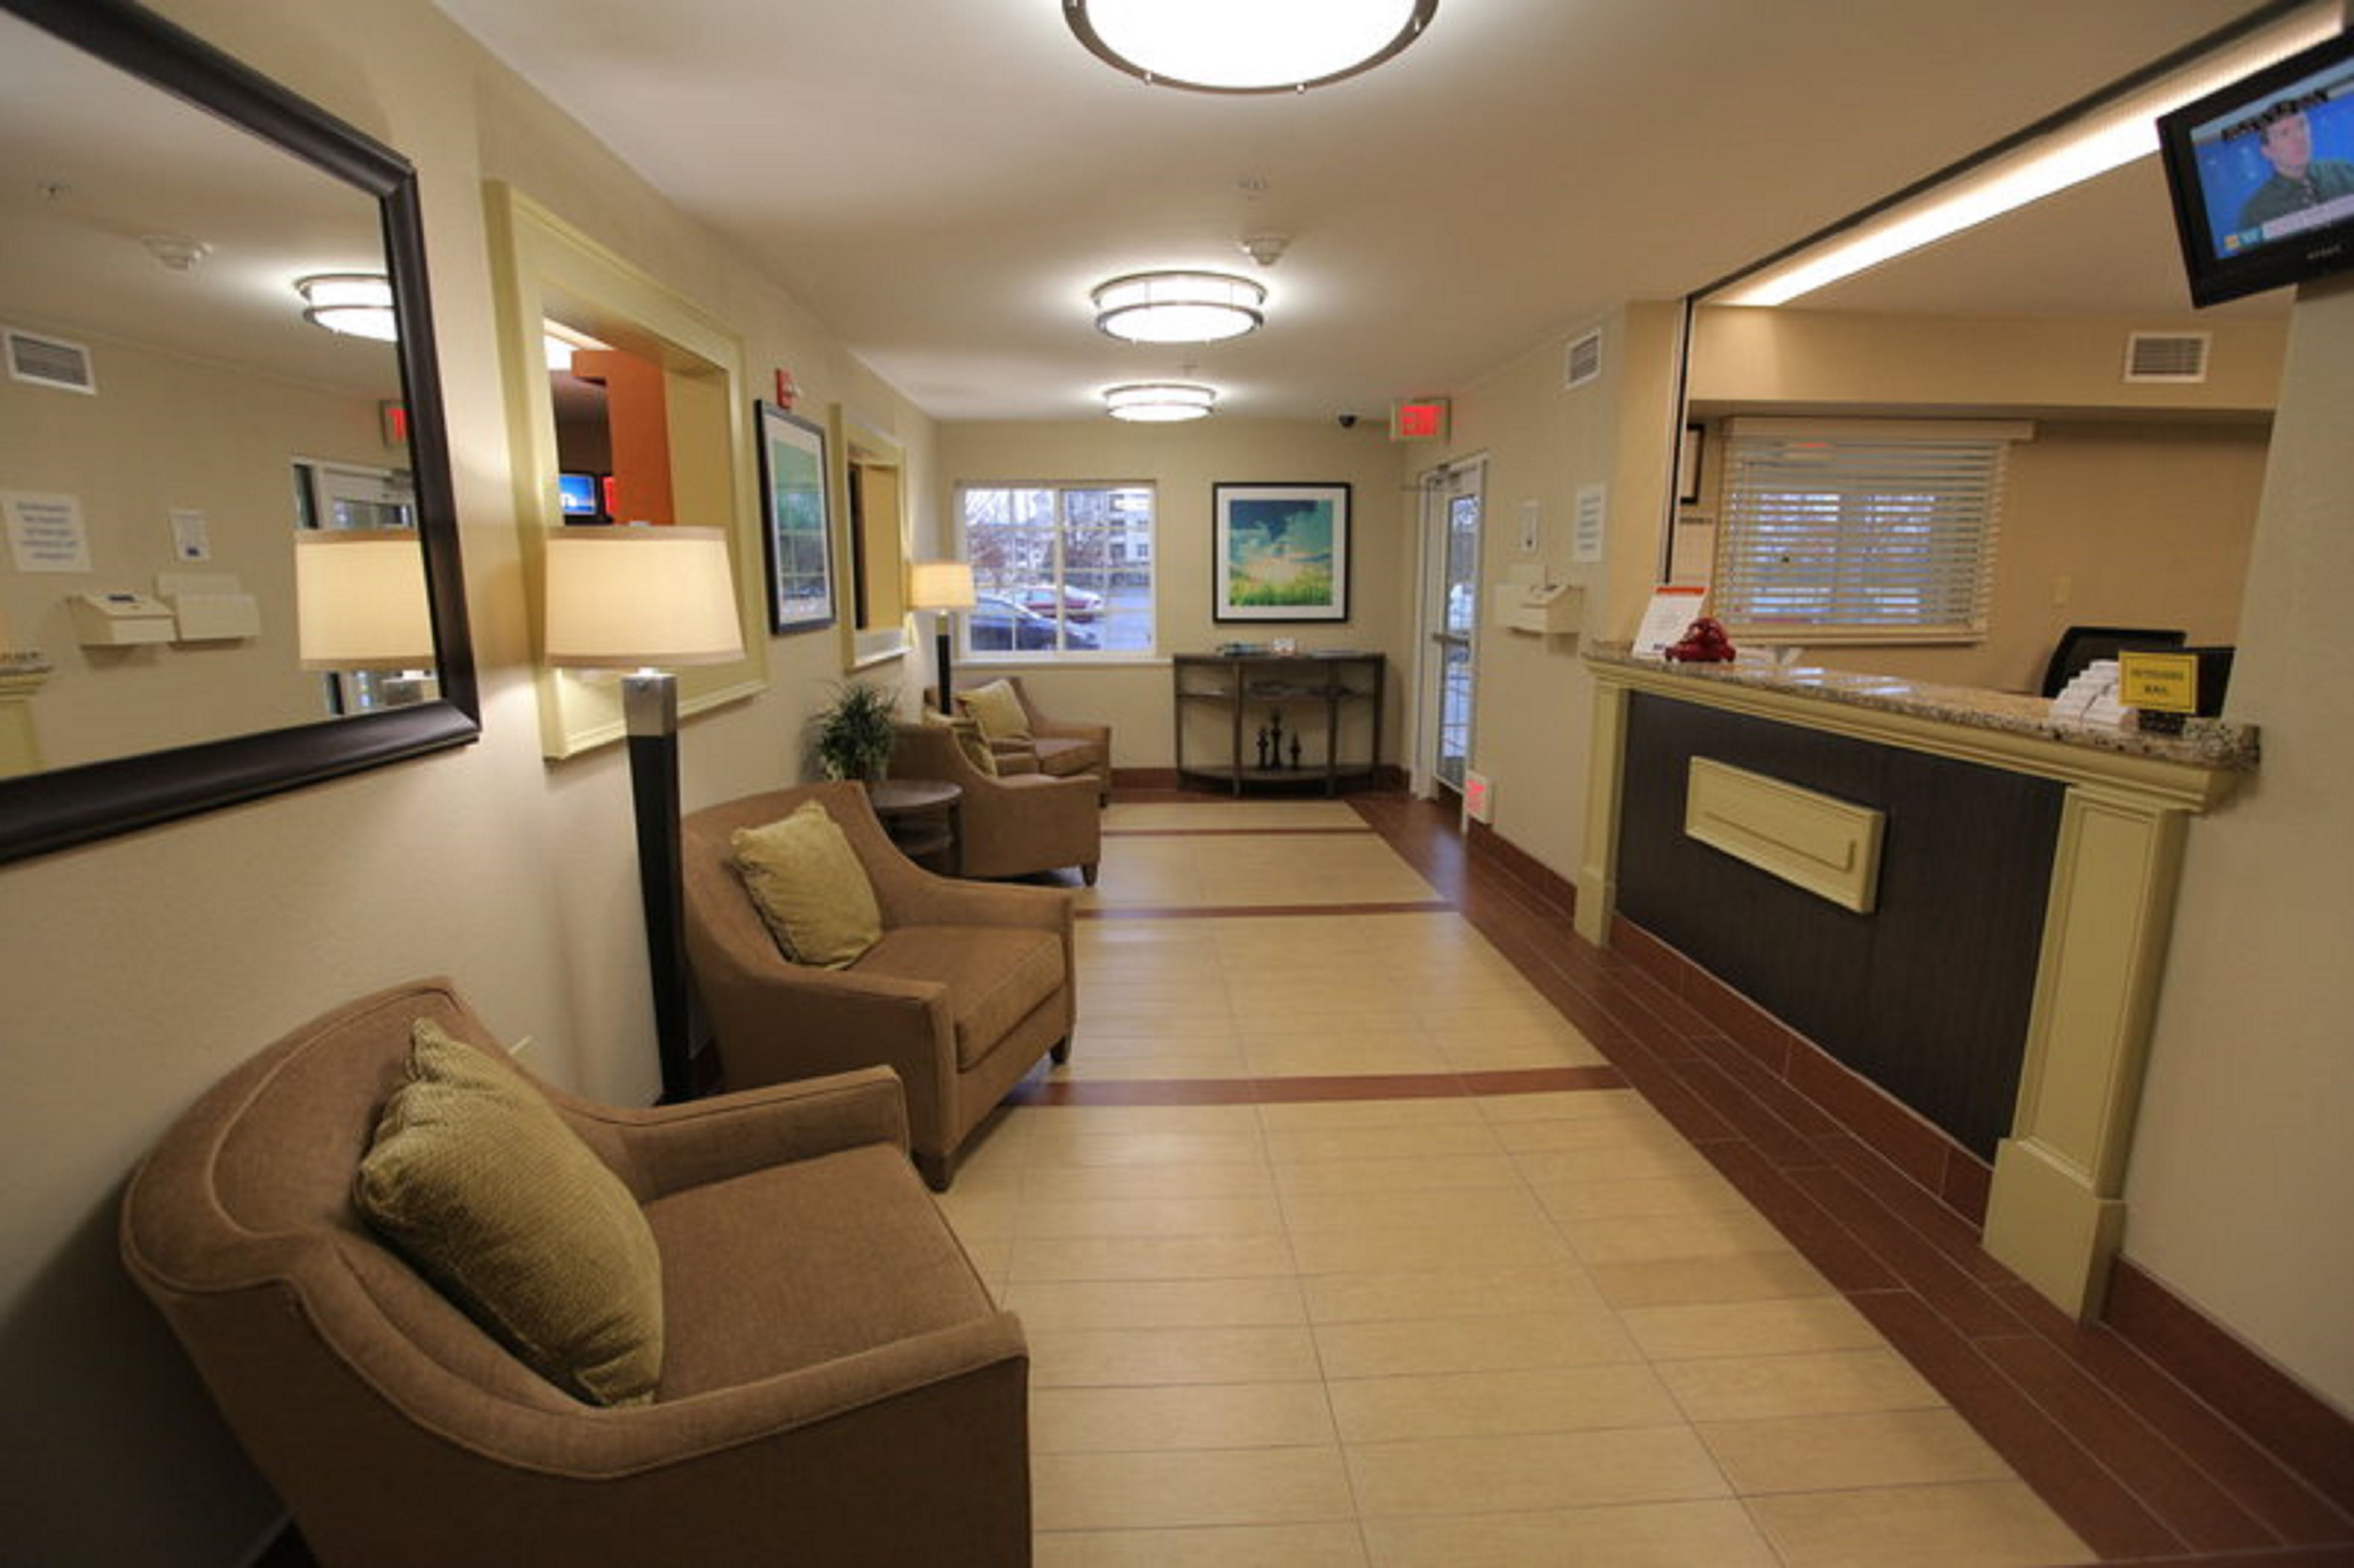 Candlewood suites washington dulles herndon at 13845 for 623 woodland terrace blvd